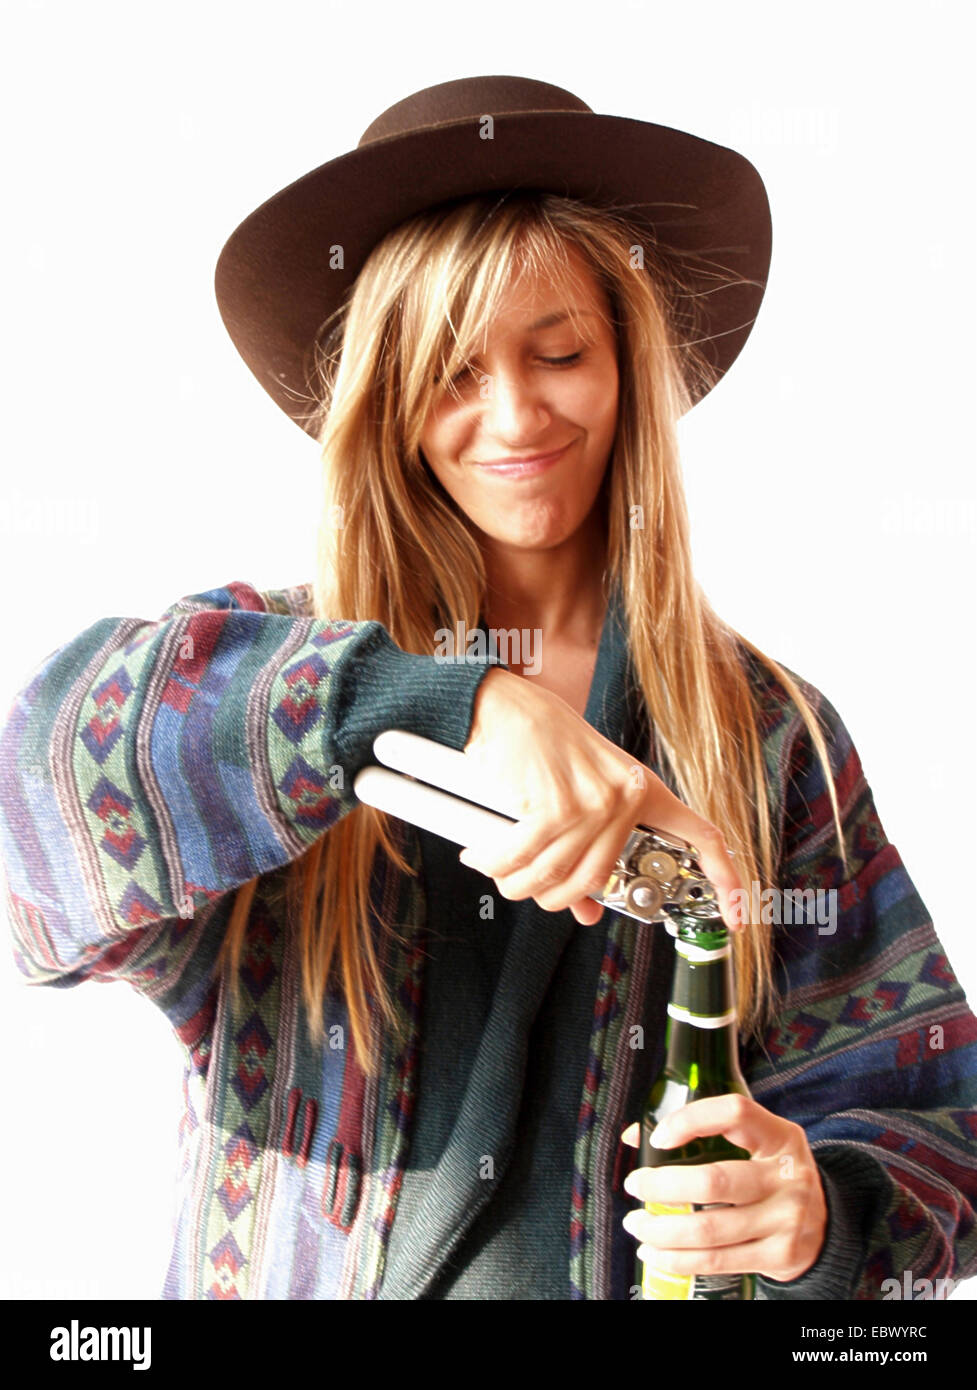 longhaired blond young woman wearing a wide-brimmed hat and a colourfully patterned jersey is opening a bottle with Stock Photo